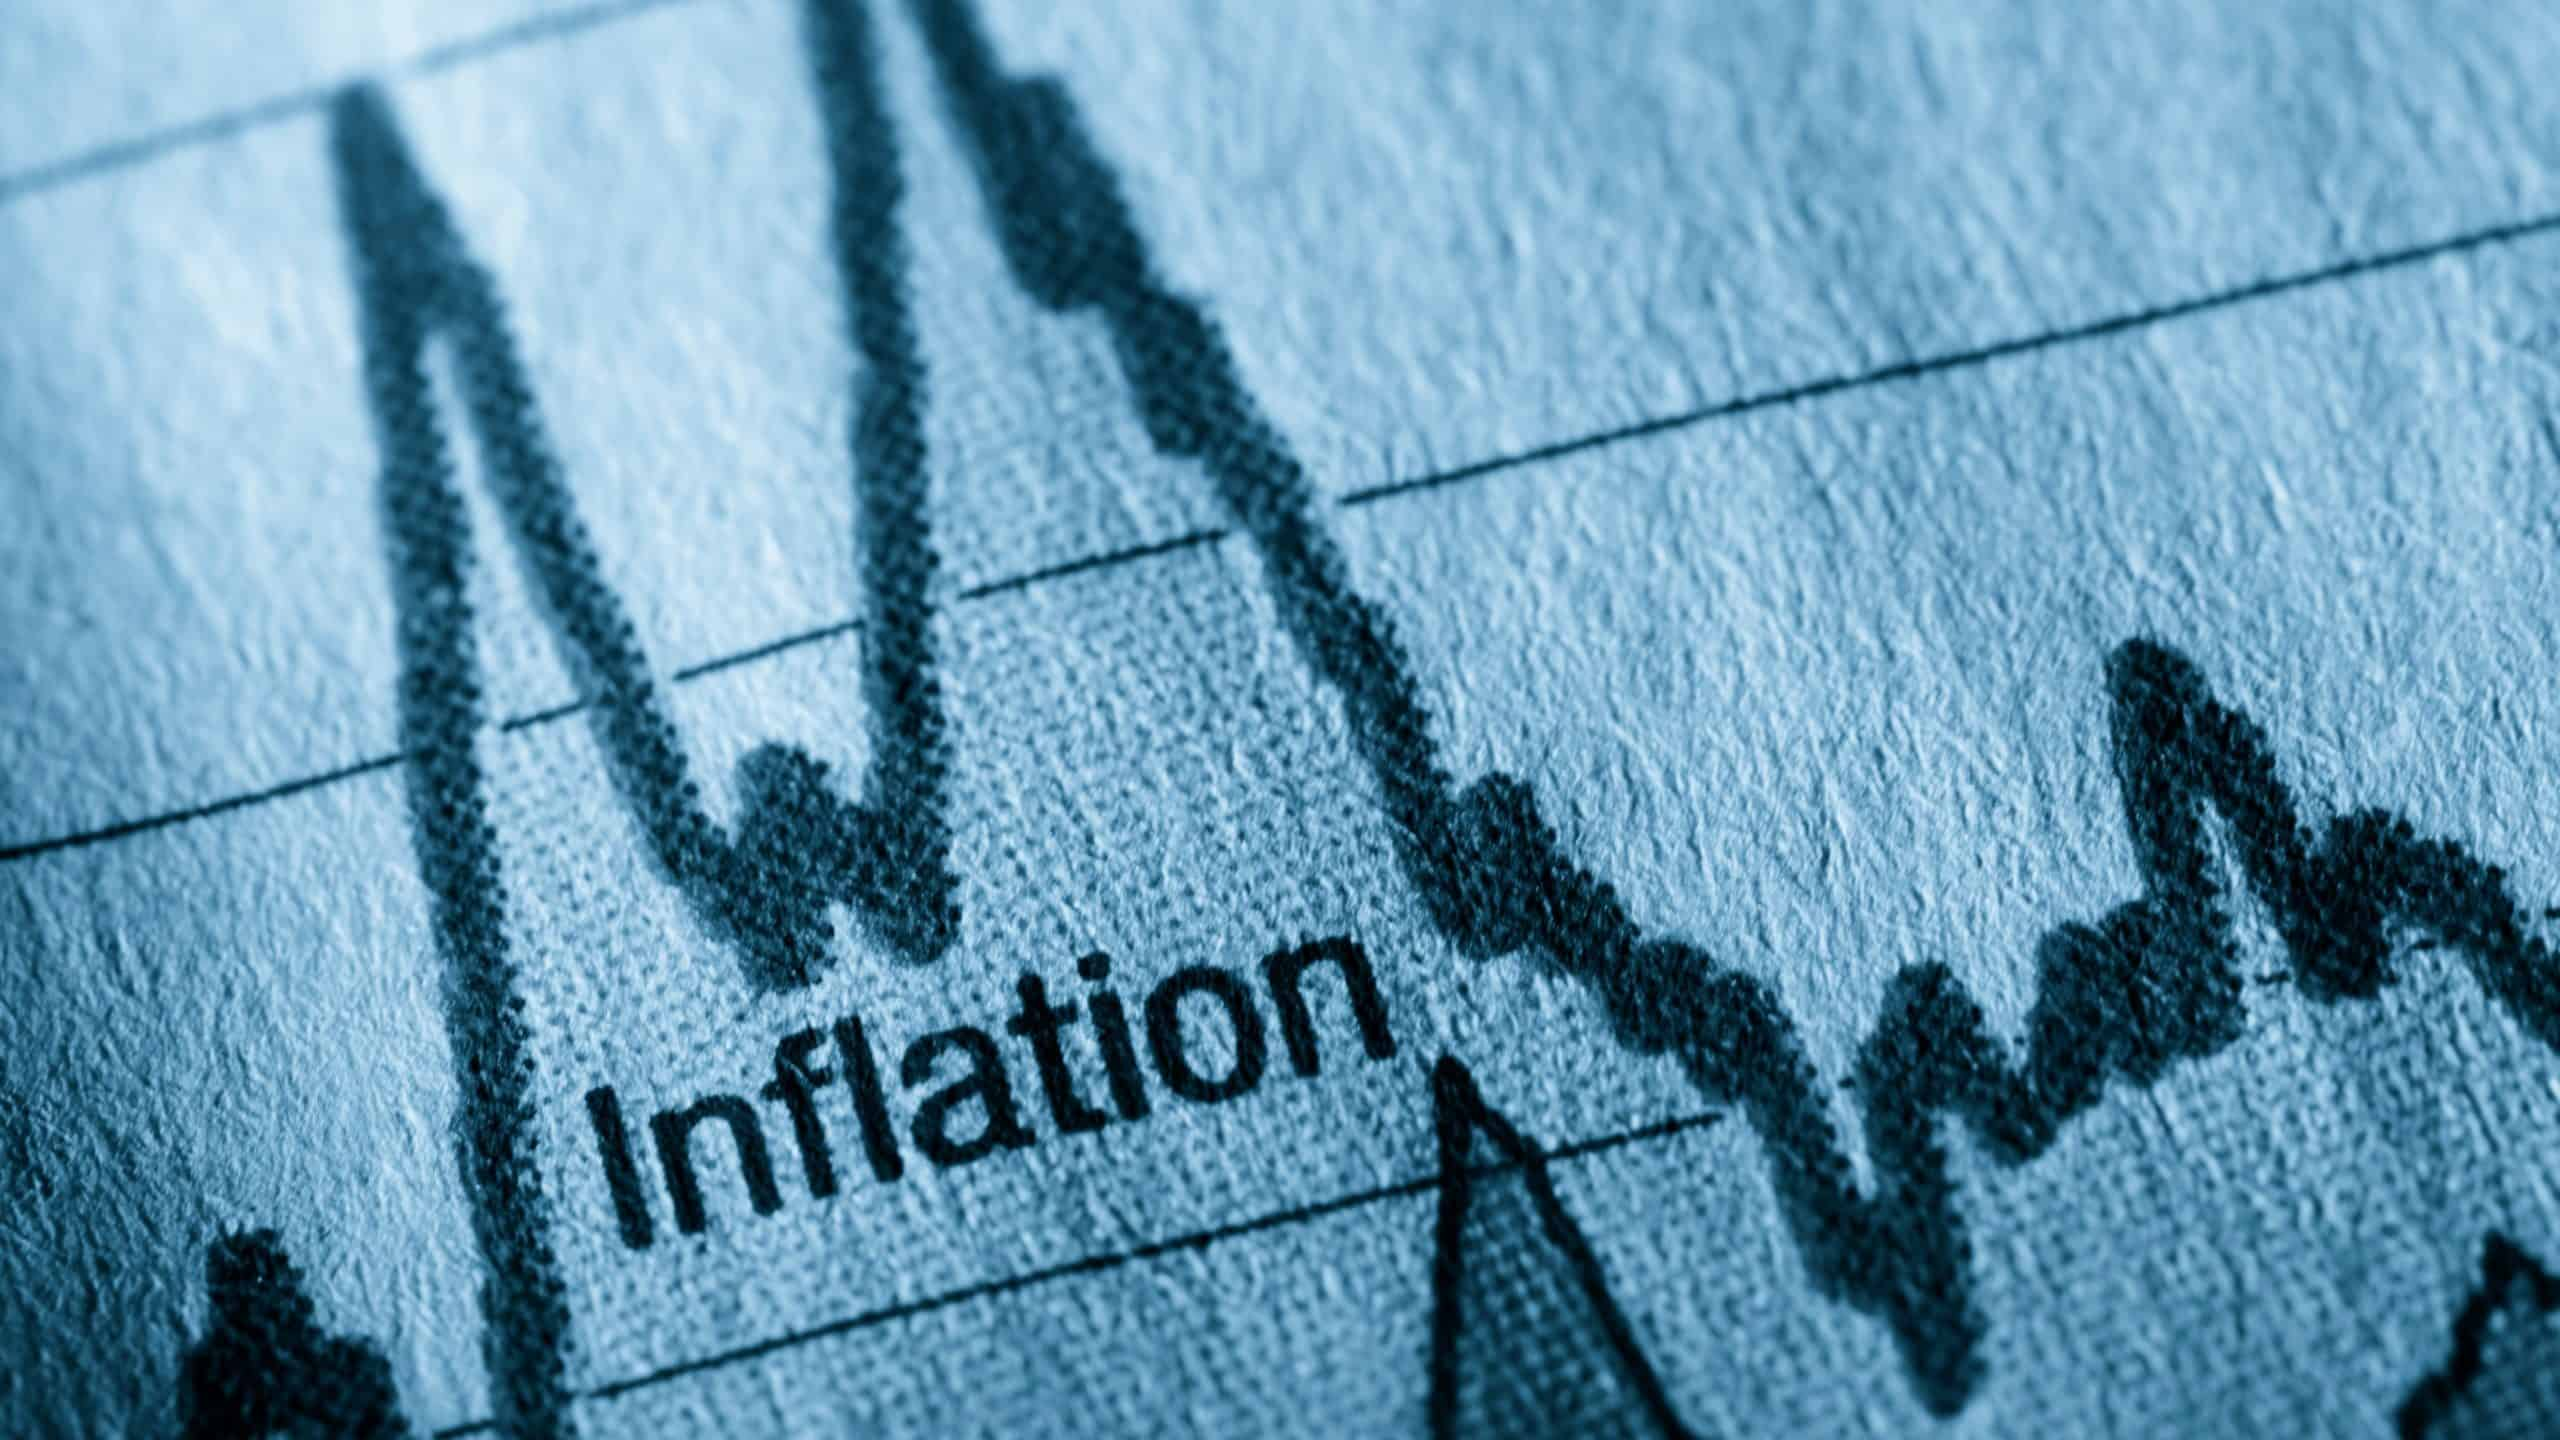 graph depicting inflation with the word written in the middle